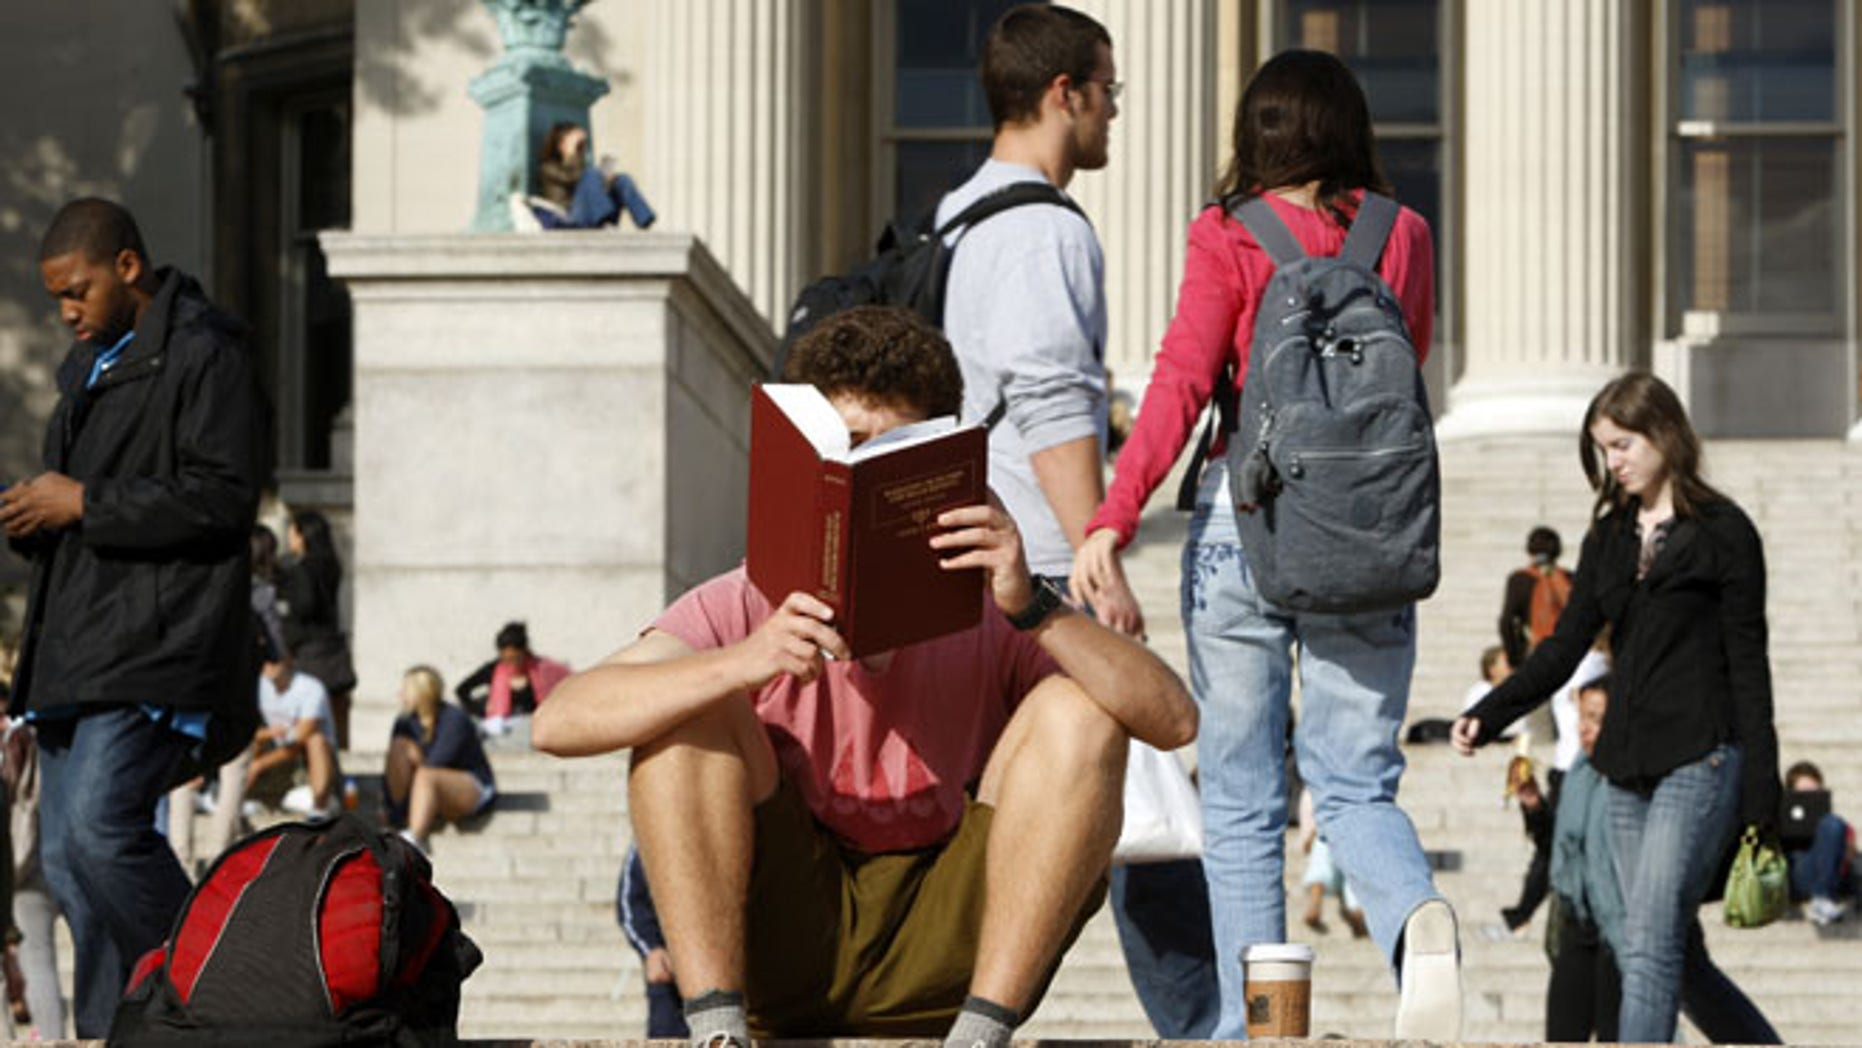 FILE: Oct. 2009: A student on the campus of Columbia University in New York, N.Y.